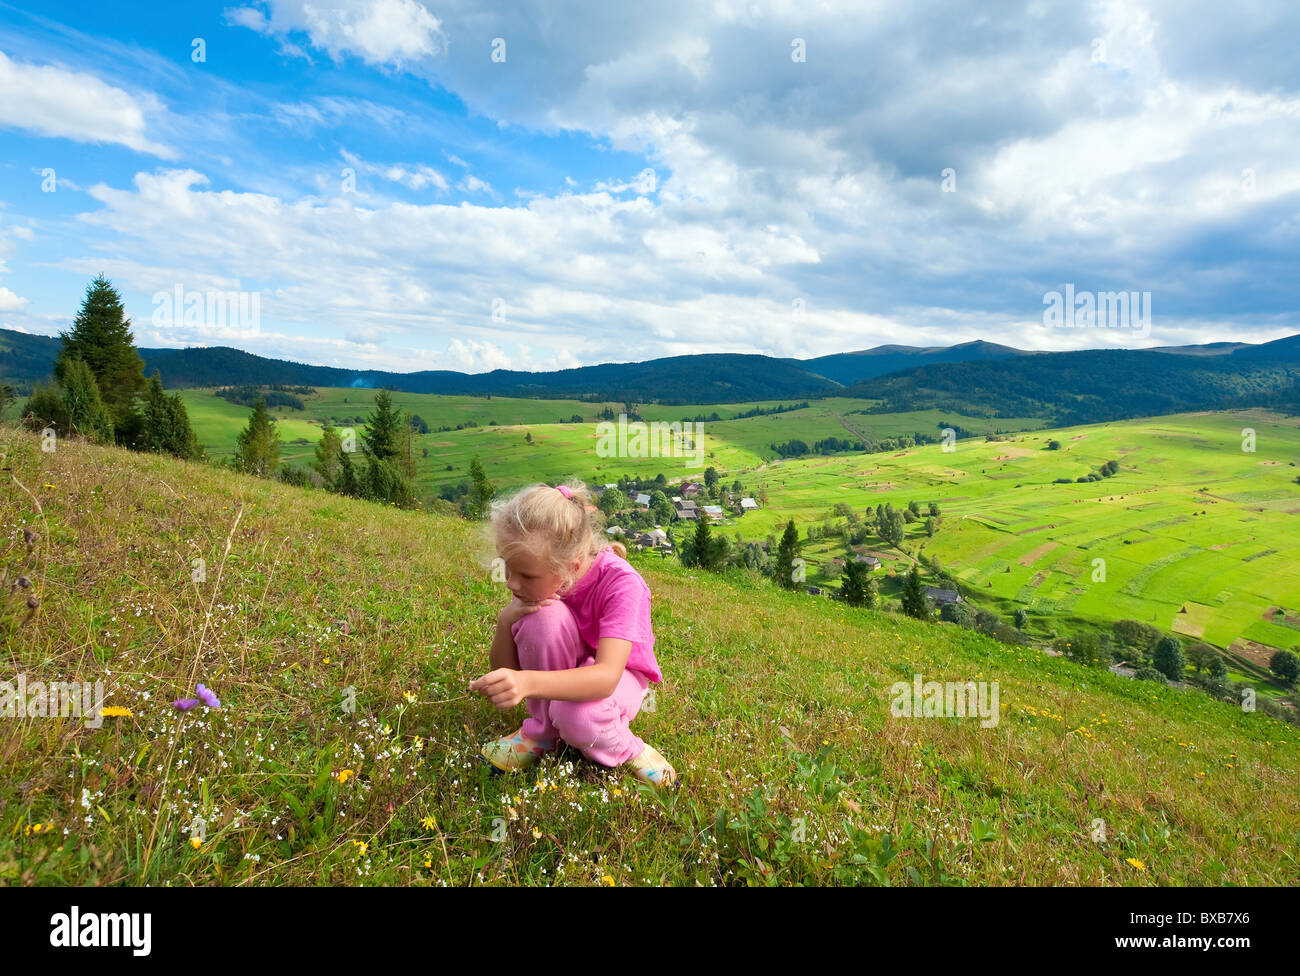 Schoolage girl in a summer mountain walk - Stock Image